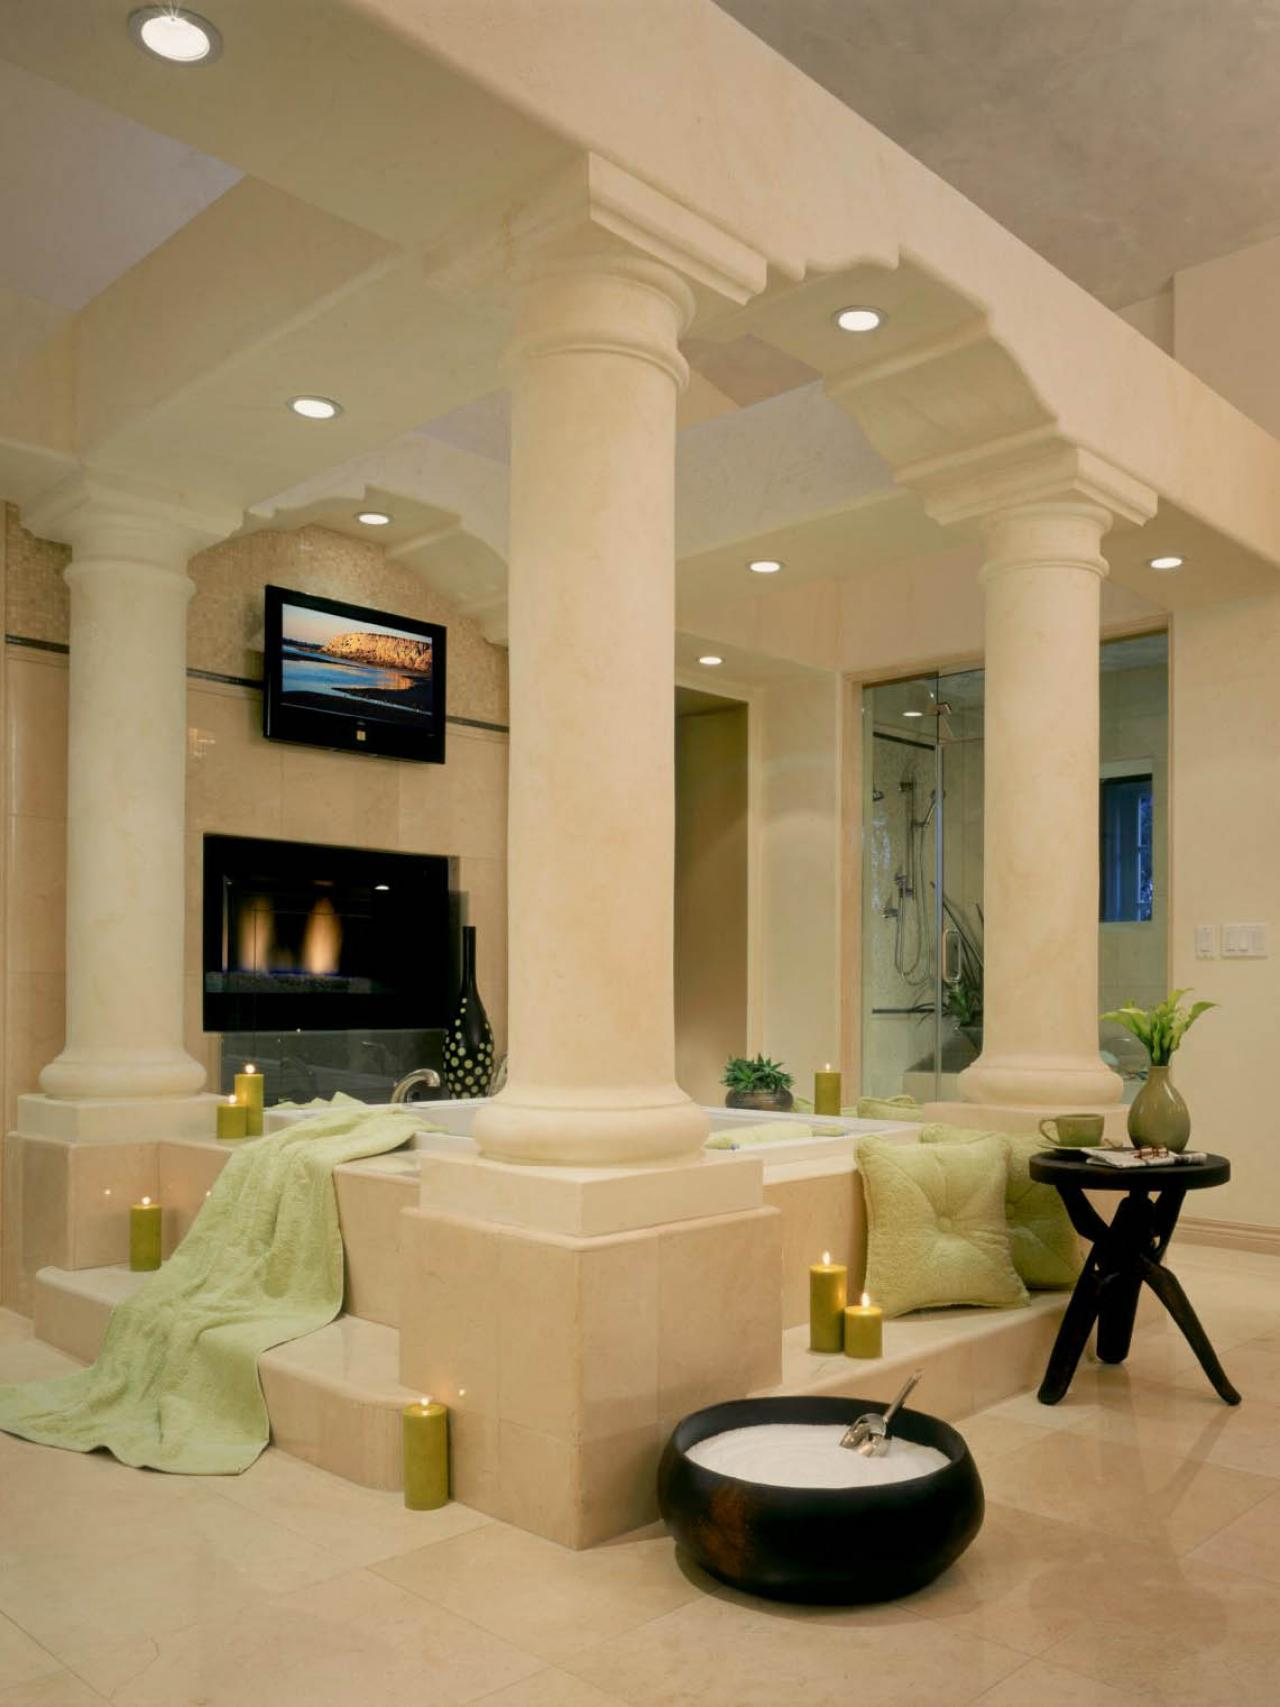 Photo page hgtv - Master bathroom design and interior guide ...